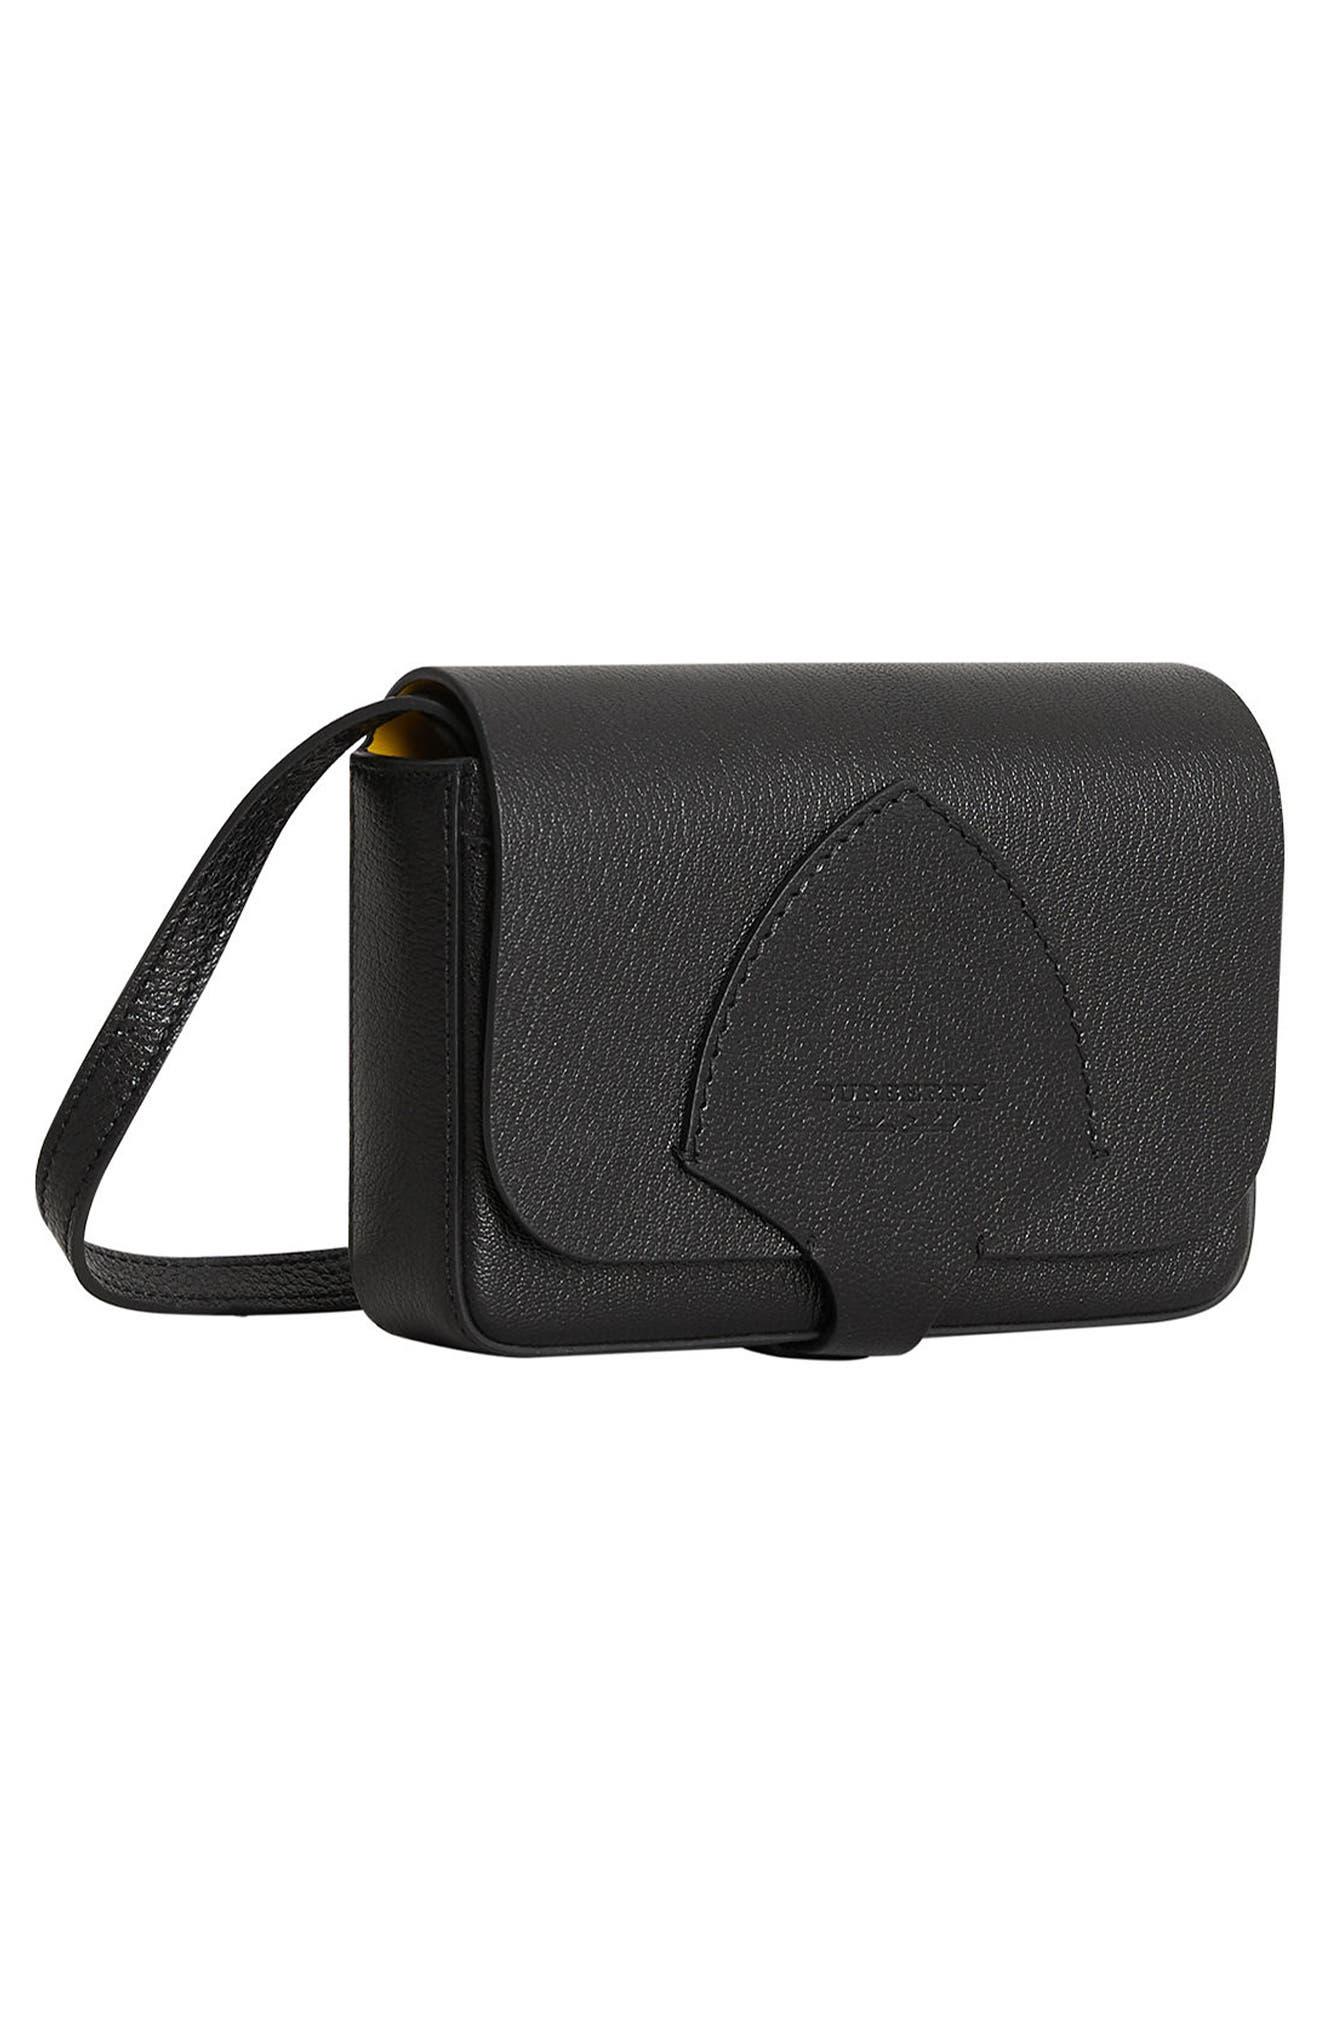 Hampshire Leather Crossbody Bag,                             Alternate thumbnail 4, color,                             001